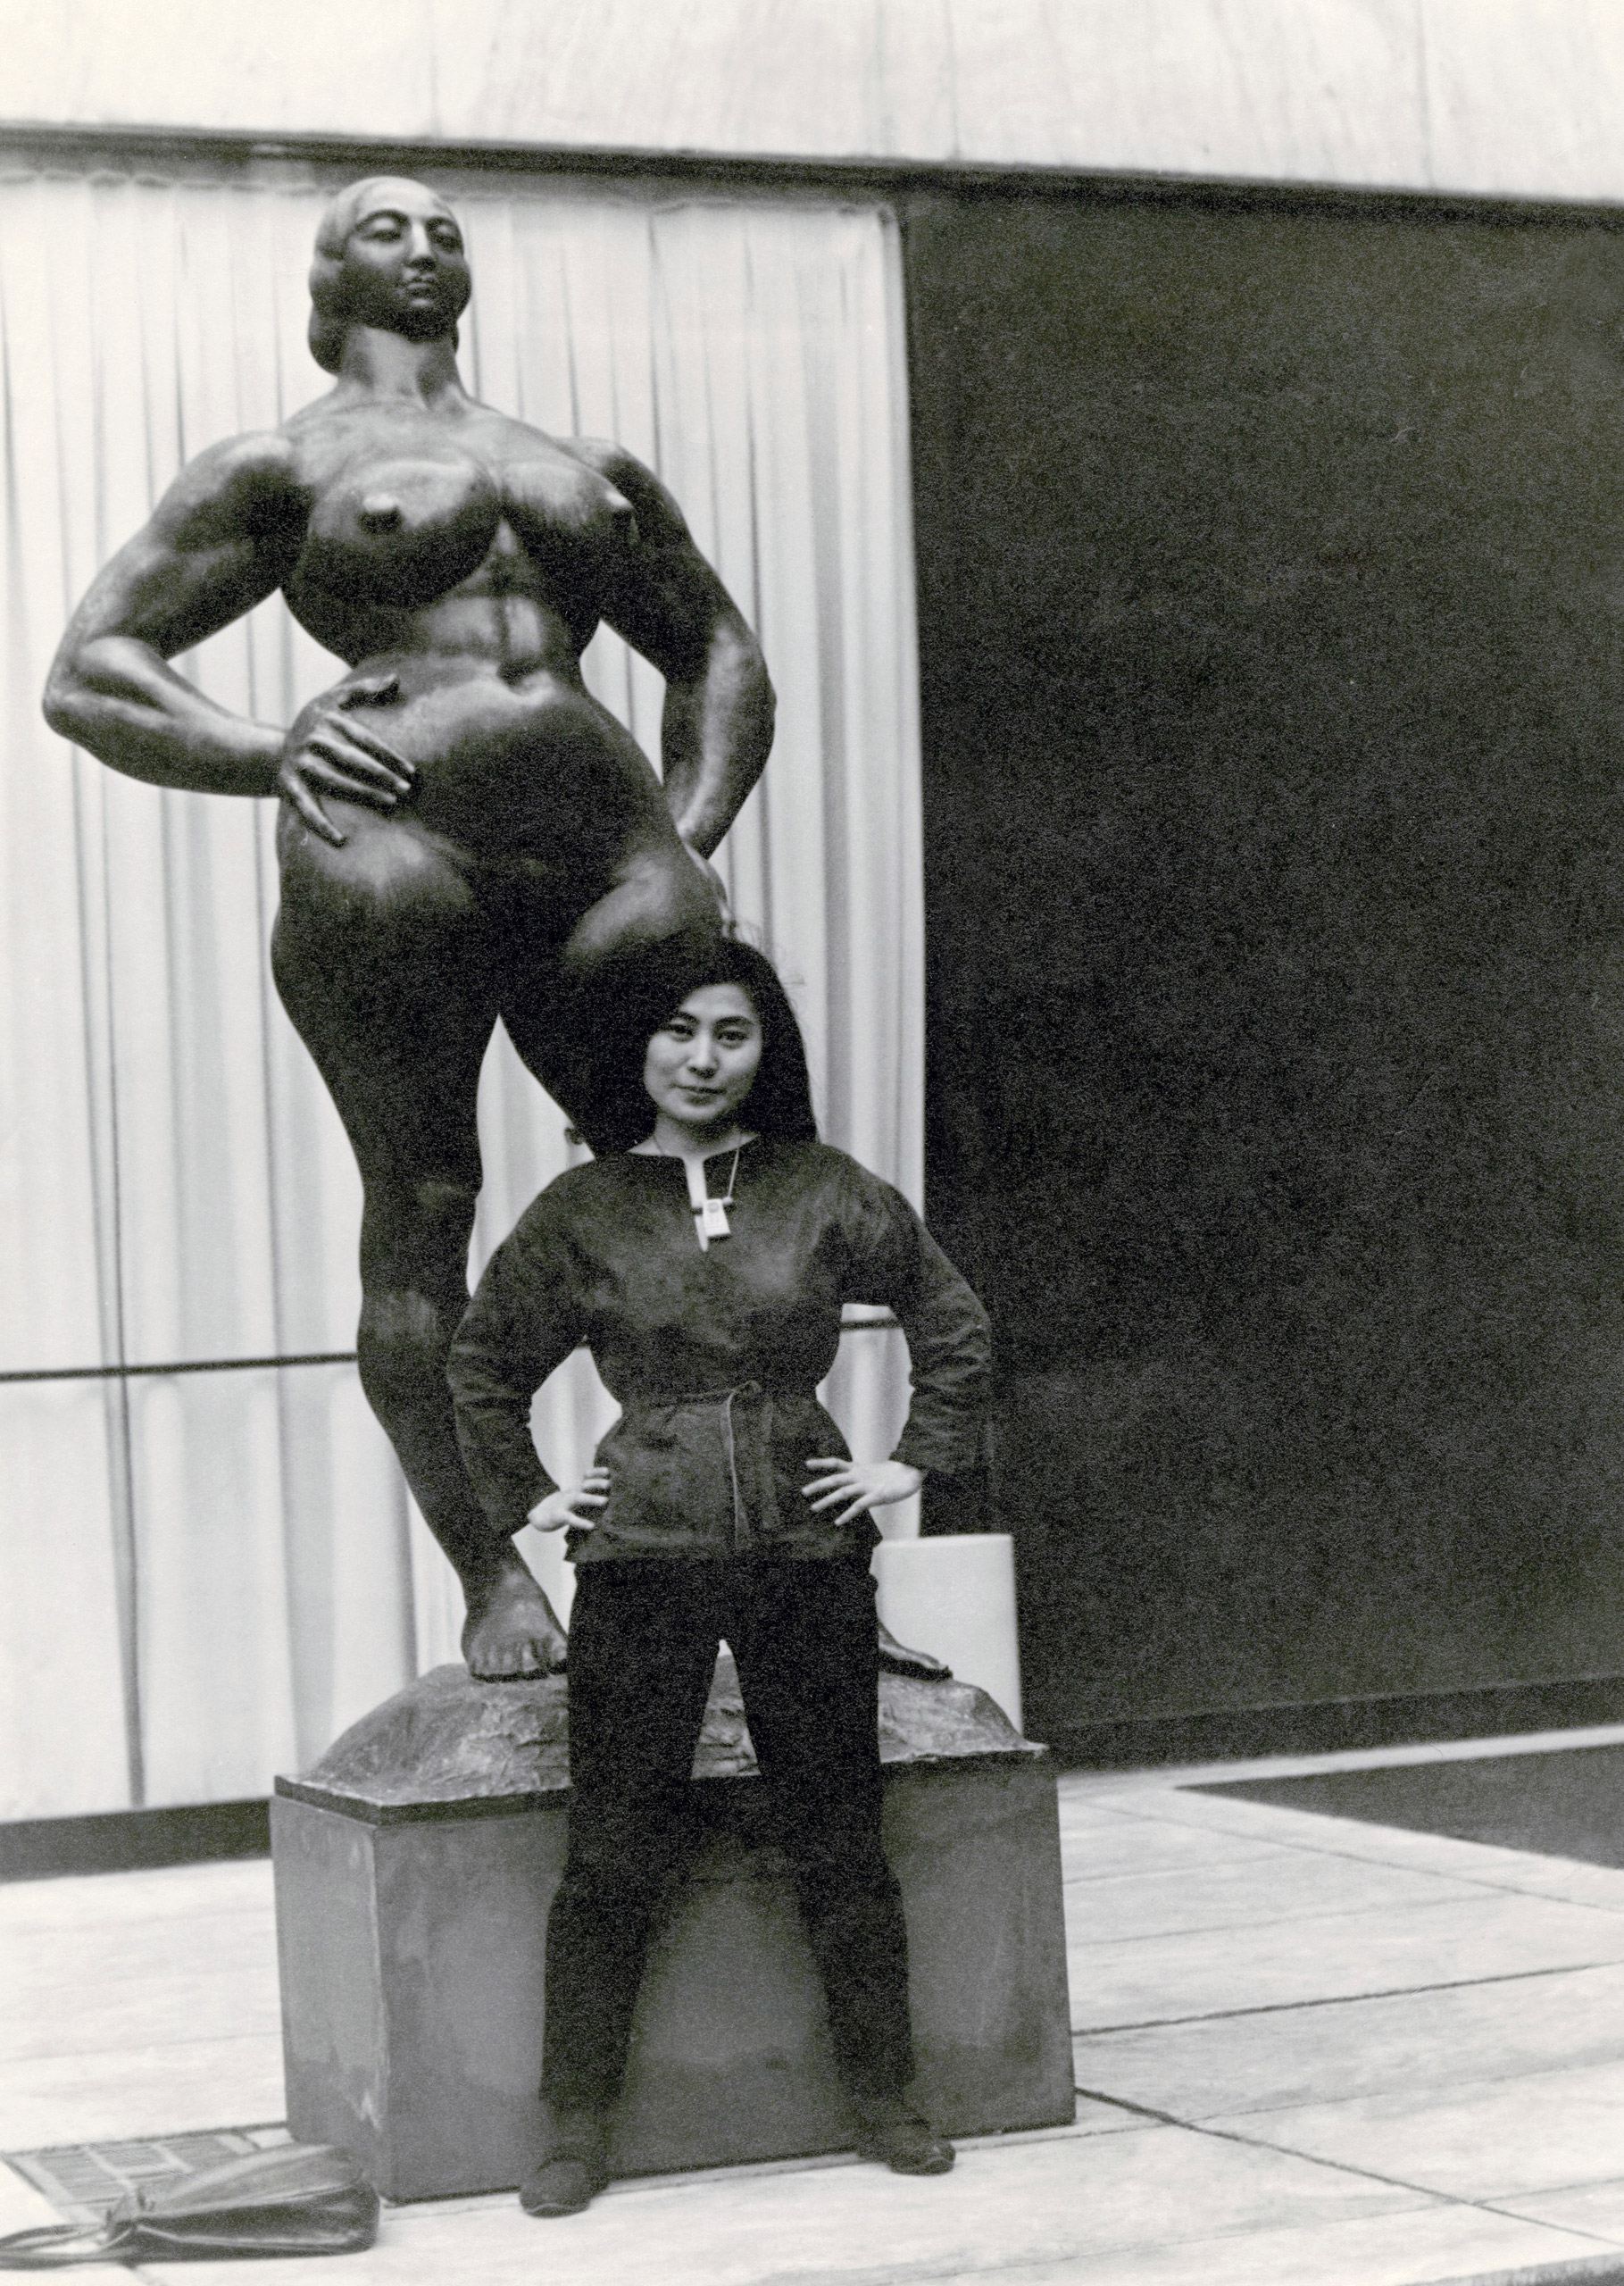 Yoko Ono with Standing Woman (1932) by Gaston Lachaise, The Museum of Modern Art Sculpture Garden, New York. c. 1960–61.